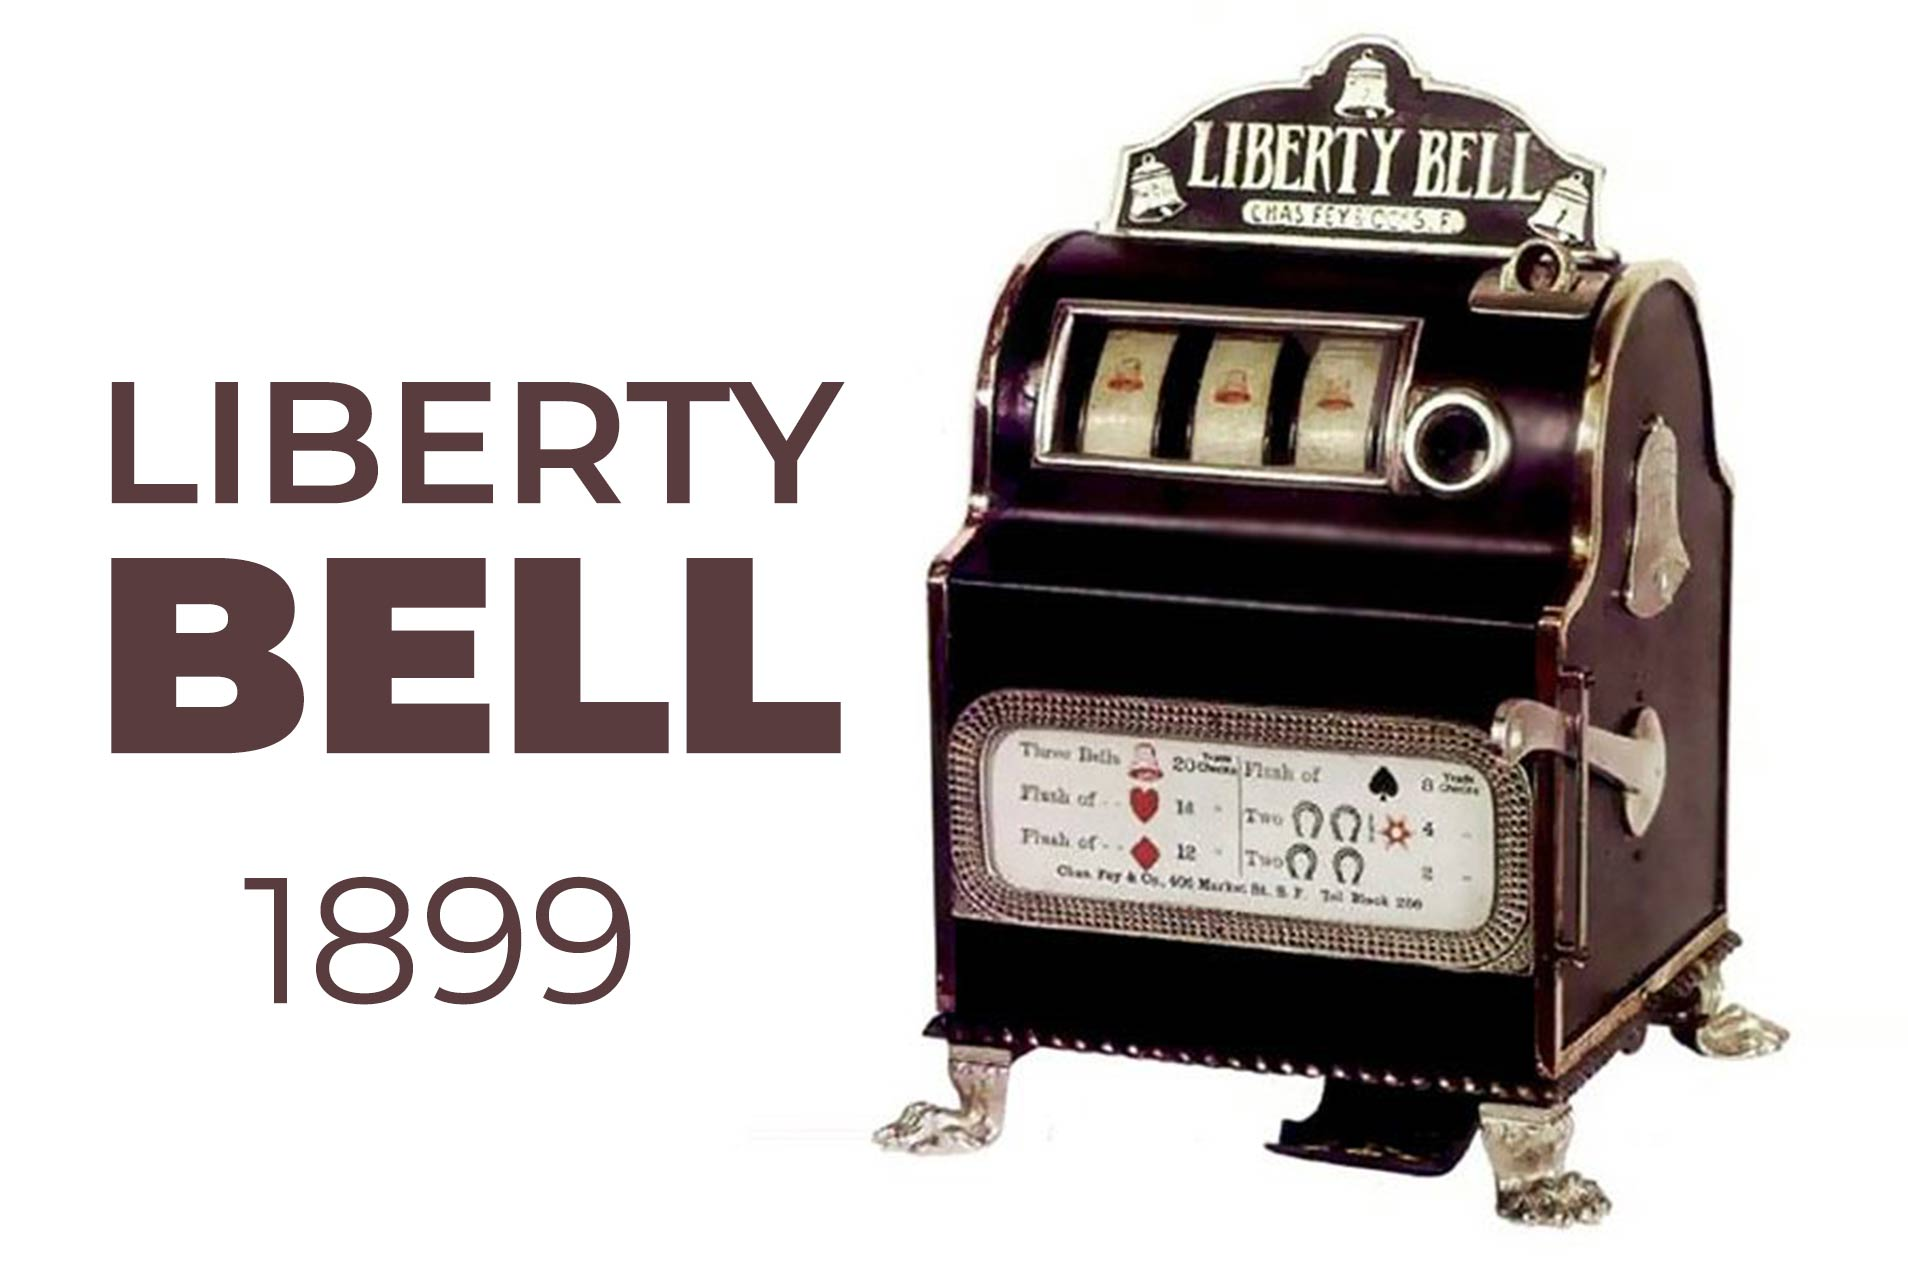 Liberty Bell – First Three Reels Slot Machine made in 1899